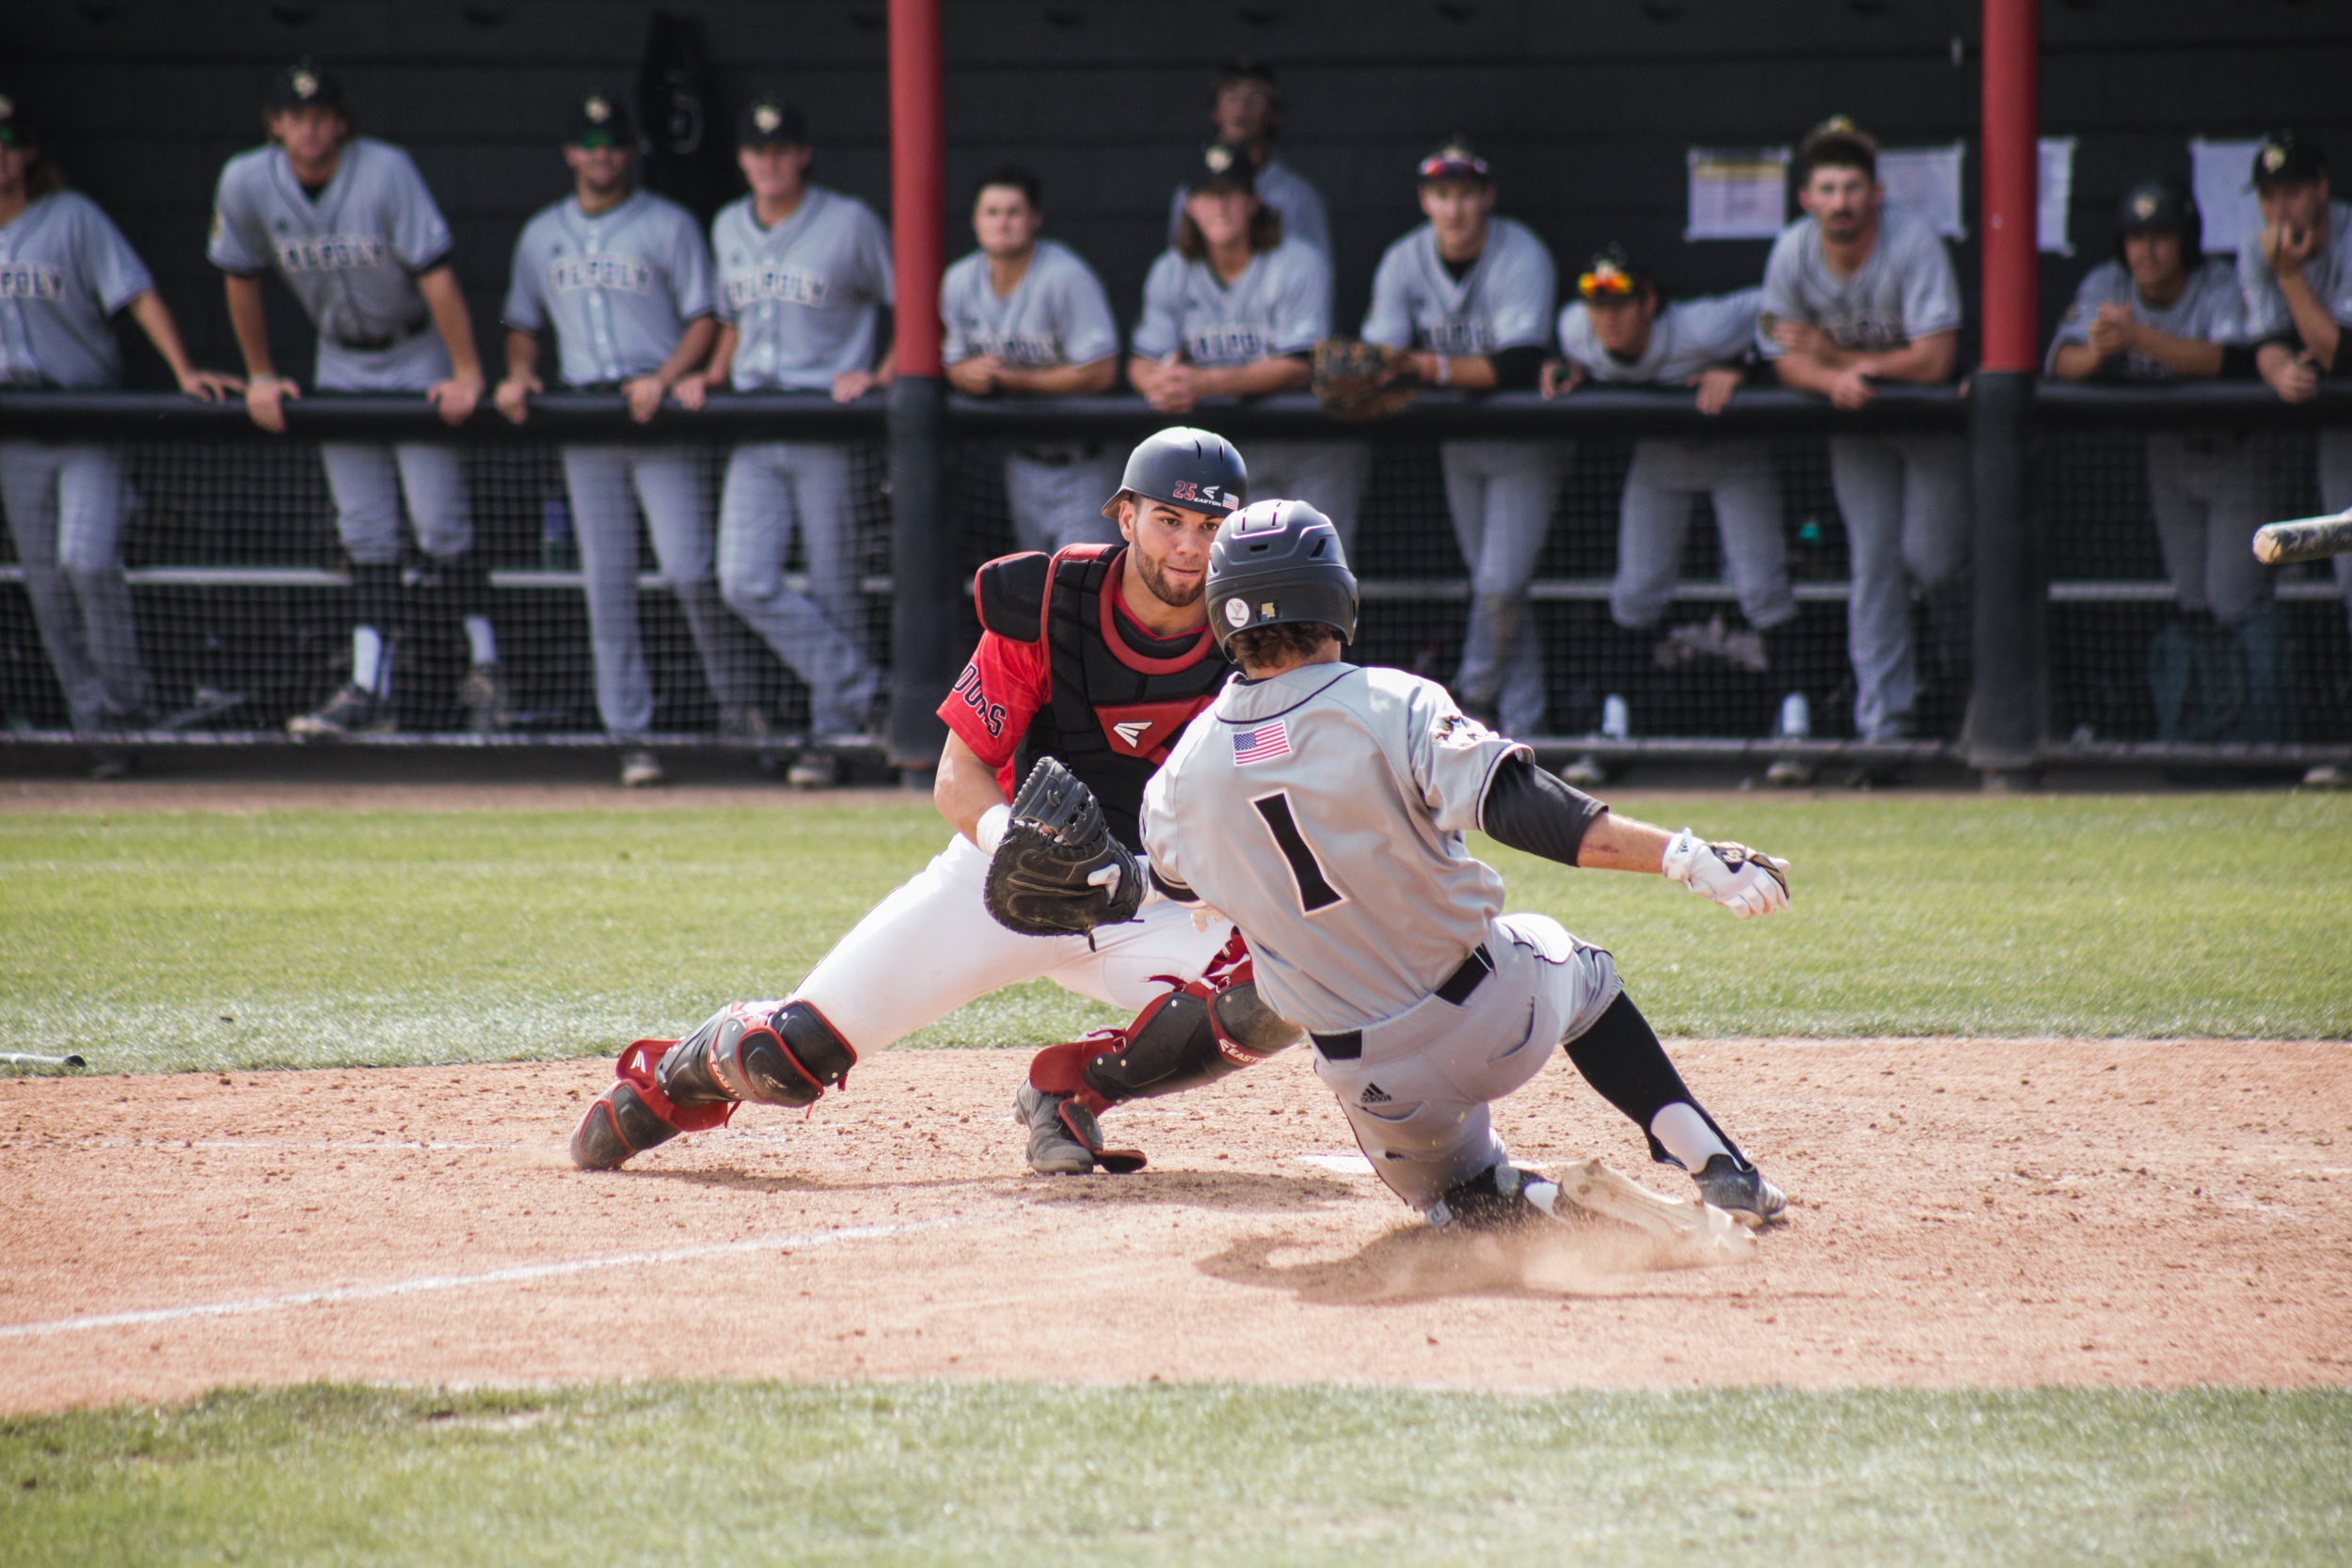 2018_03_31 - Baseball vs Cal Poly (max reso)-8.jpg